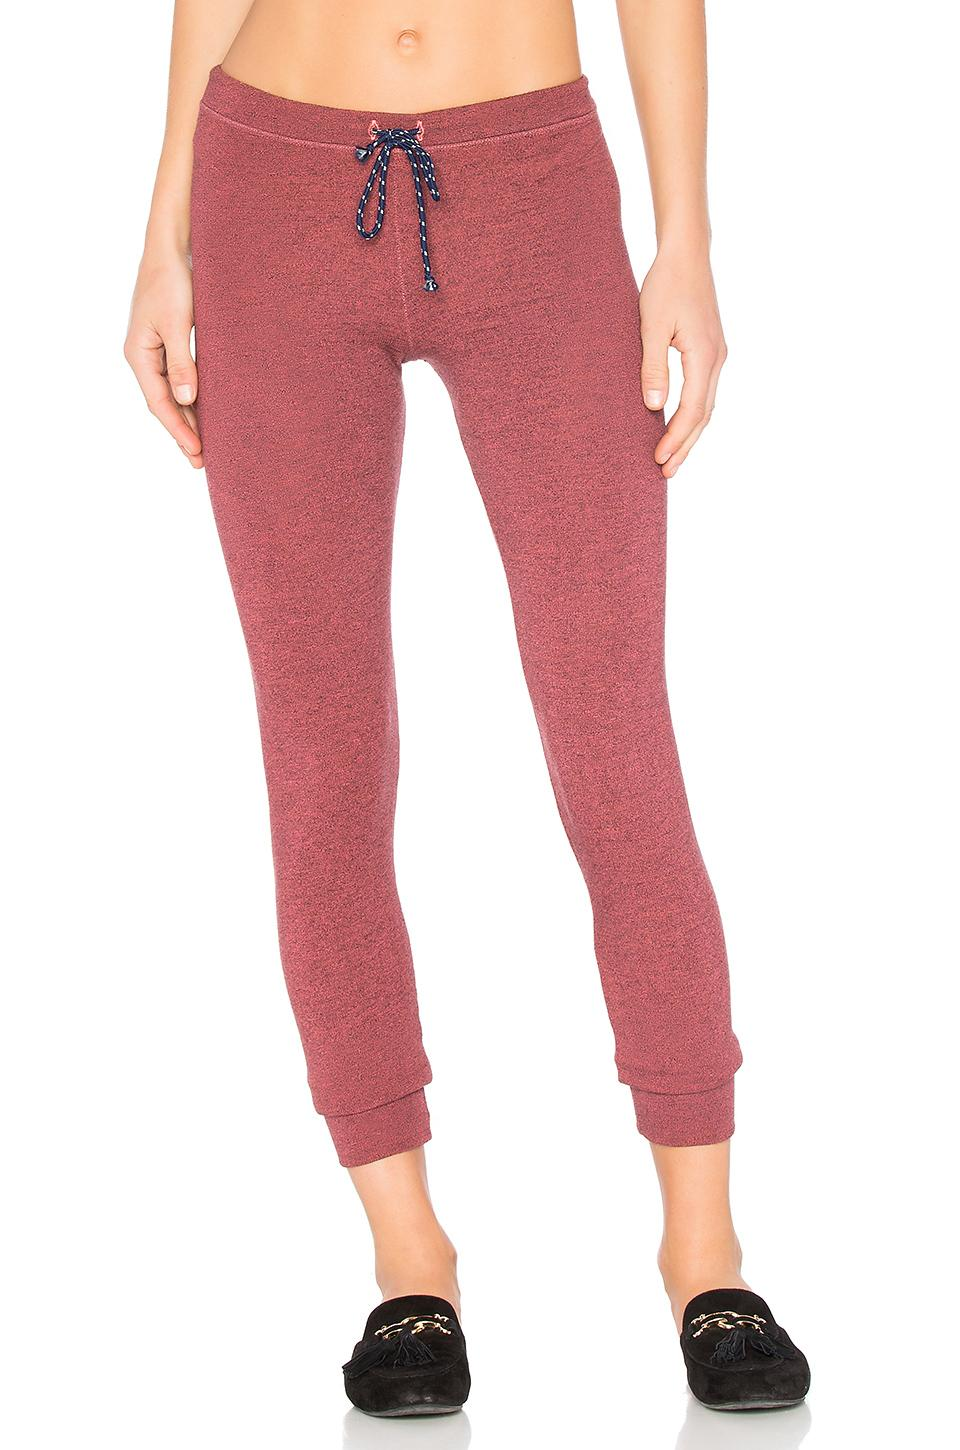 Shop our Collection of Women's Red Skinny Pants at janydo.ml for the Latest Designer Brands & Styles. FREE SHIPPING AVAILABLE!